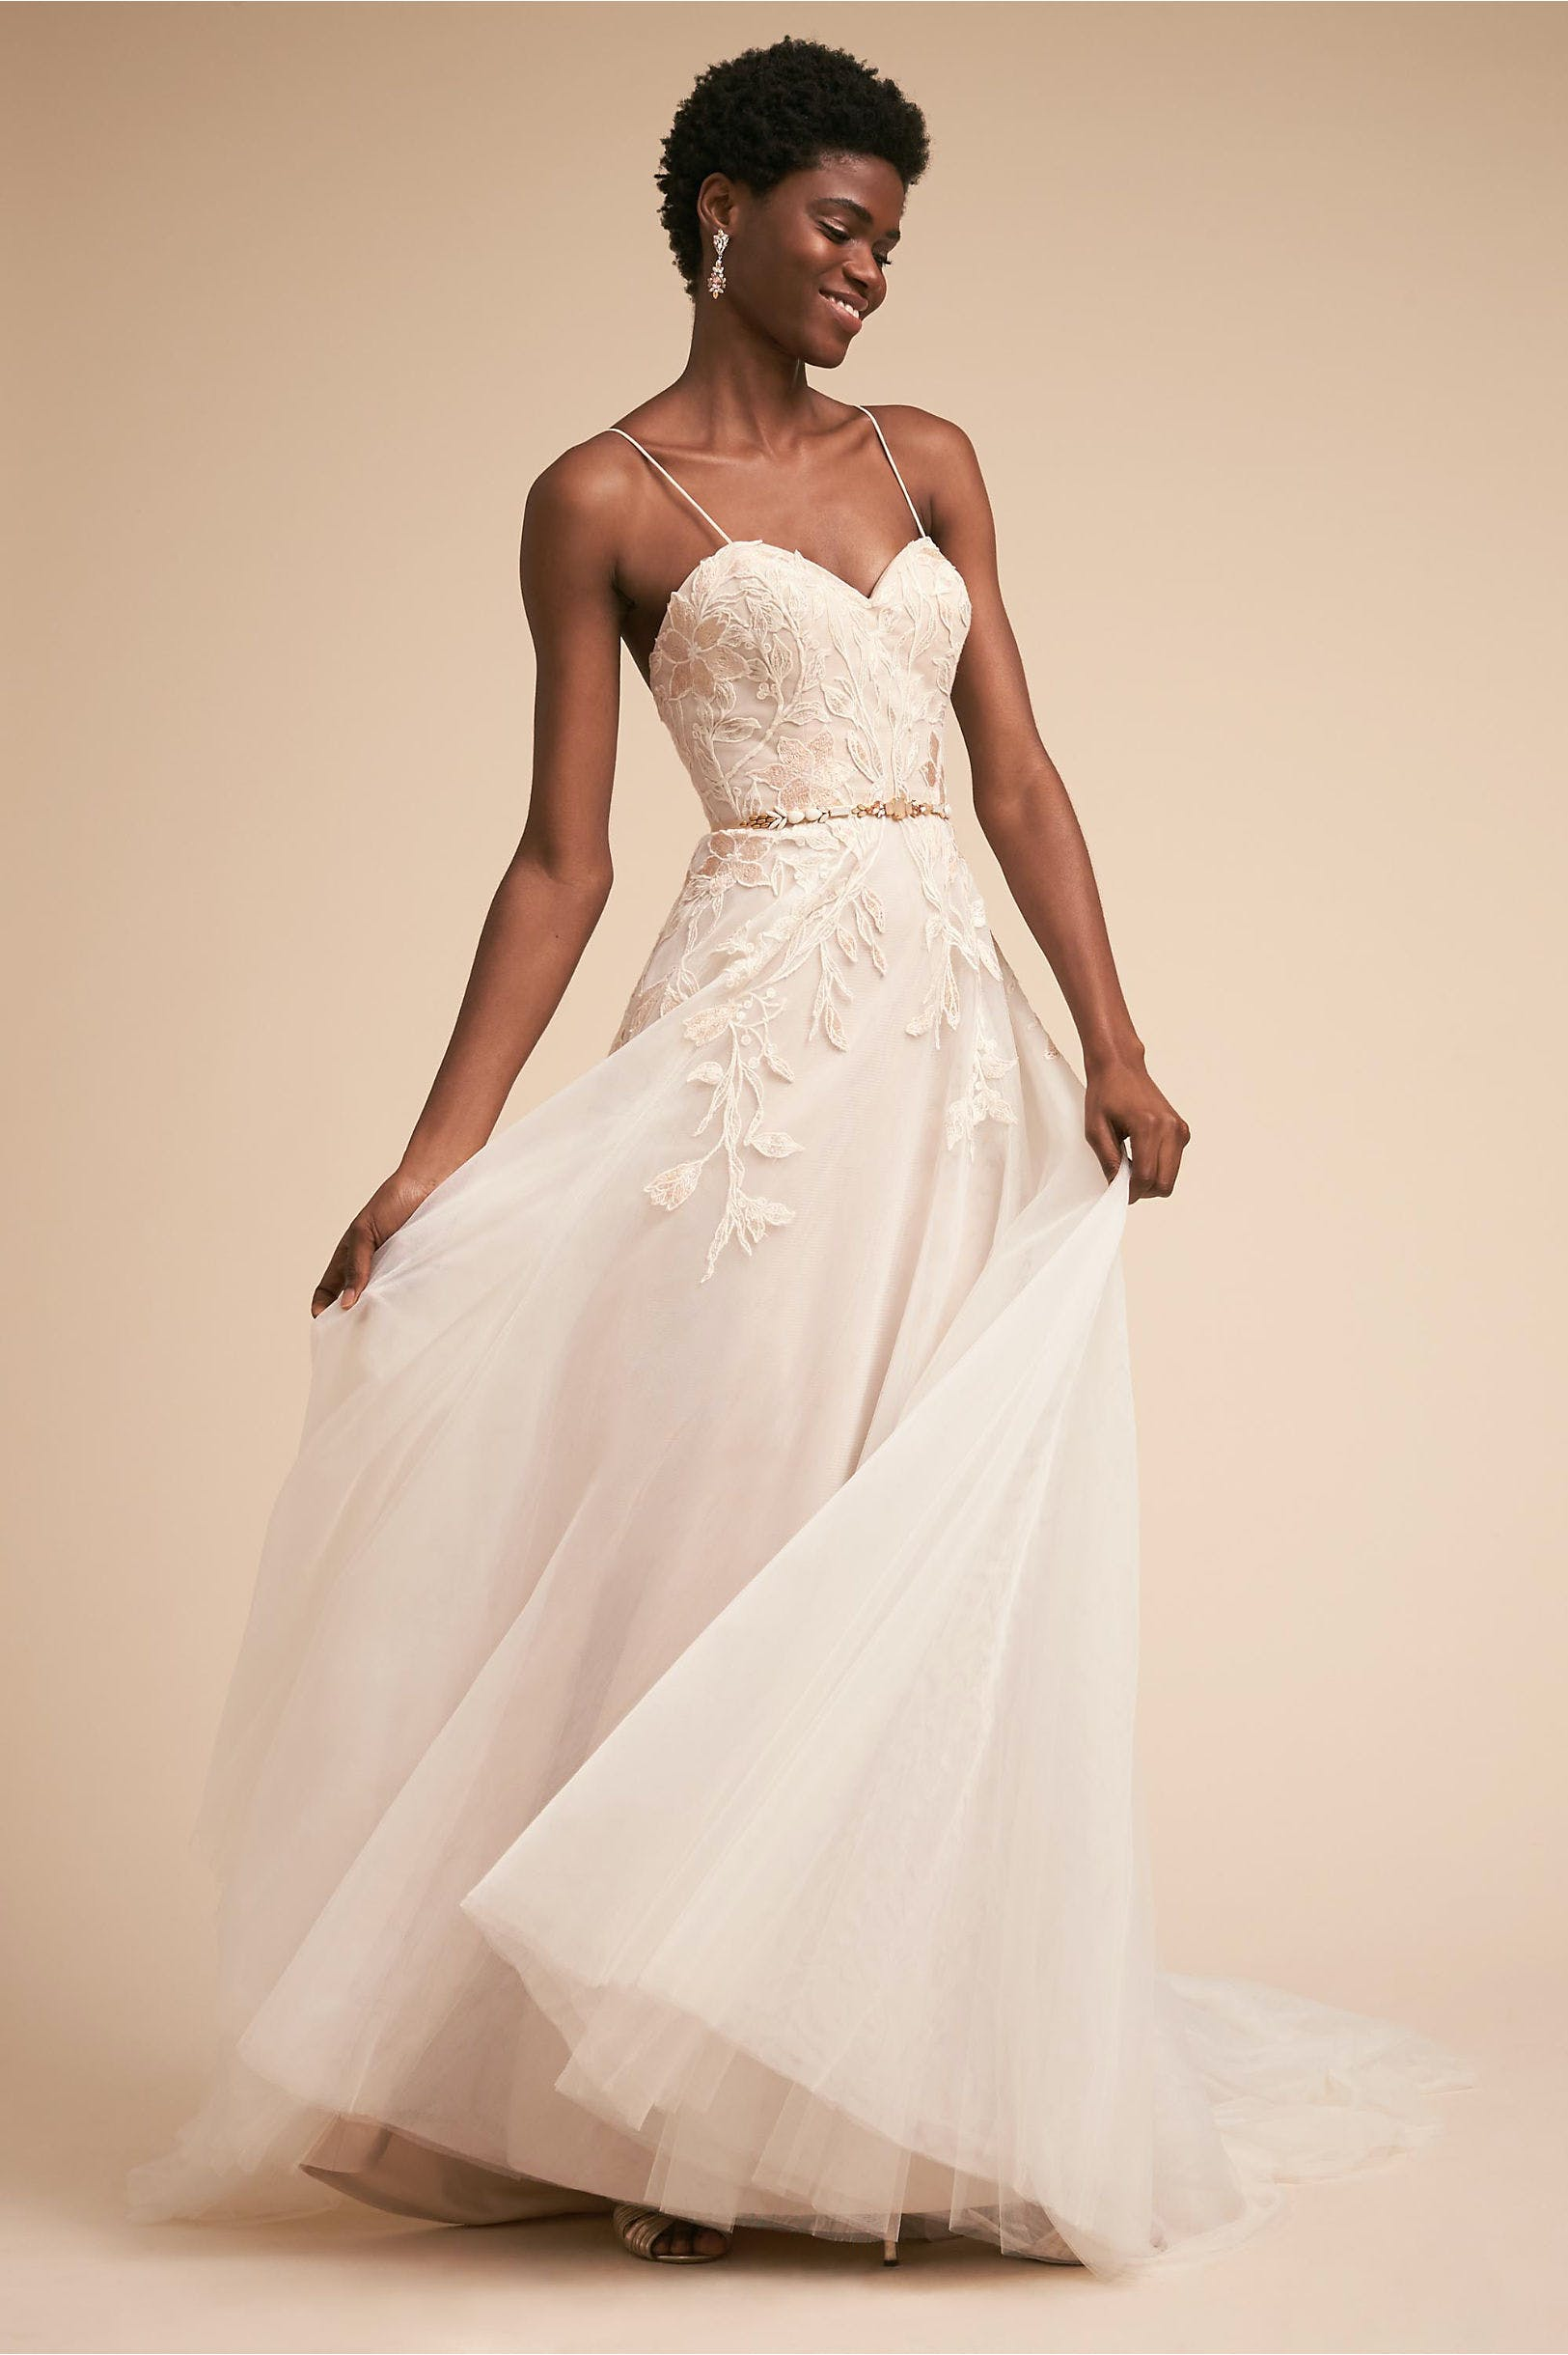 Guinevere Gown BHLDN new bridal collection